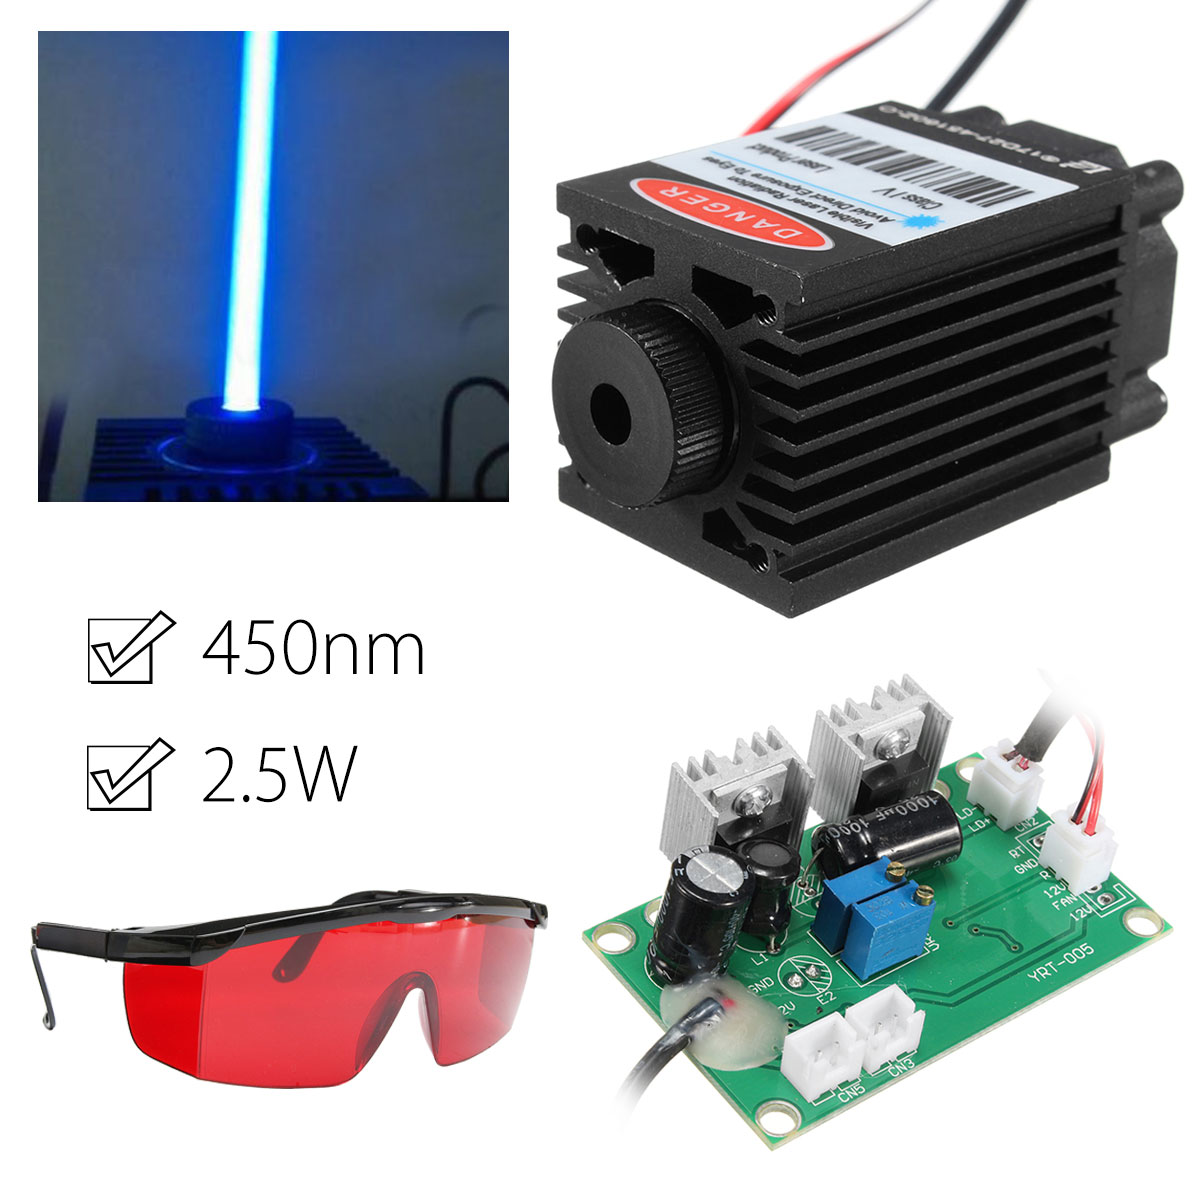 2.5W 450nm Blue Laser Module TTL 12V Focusable High Power + Goggles for CNC Cutting Laser Engraving Machine Woodworking Parts 1pcs dn20mm manual wire bender 500mm inner pipe bending spring pvc wire spring tube bender silver